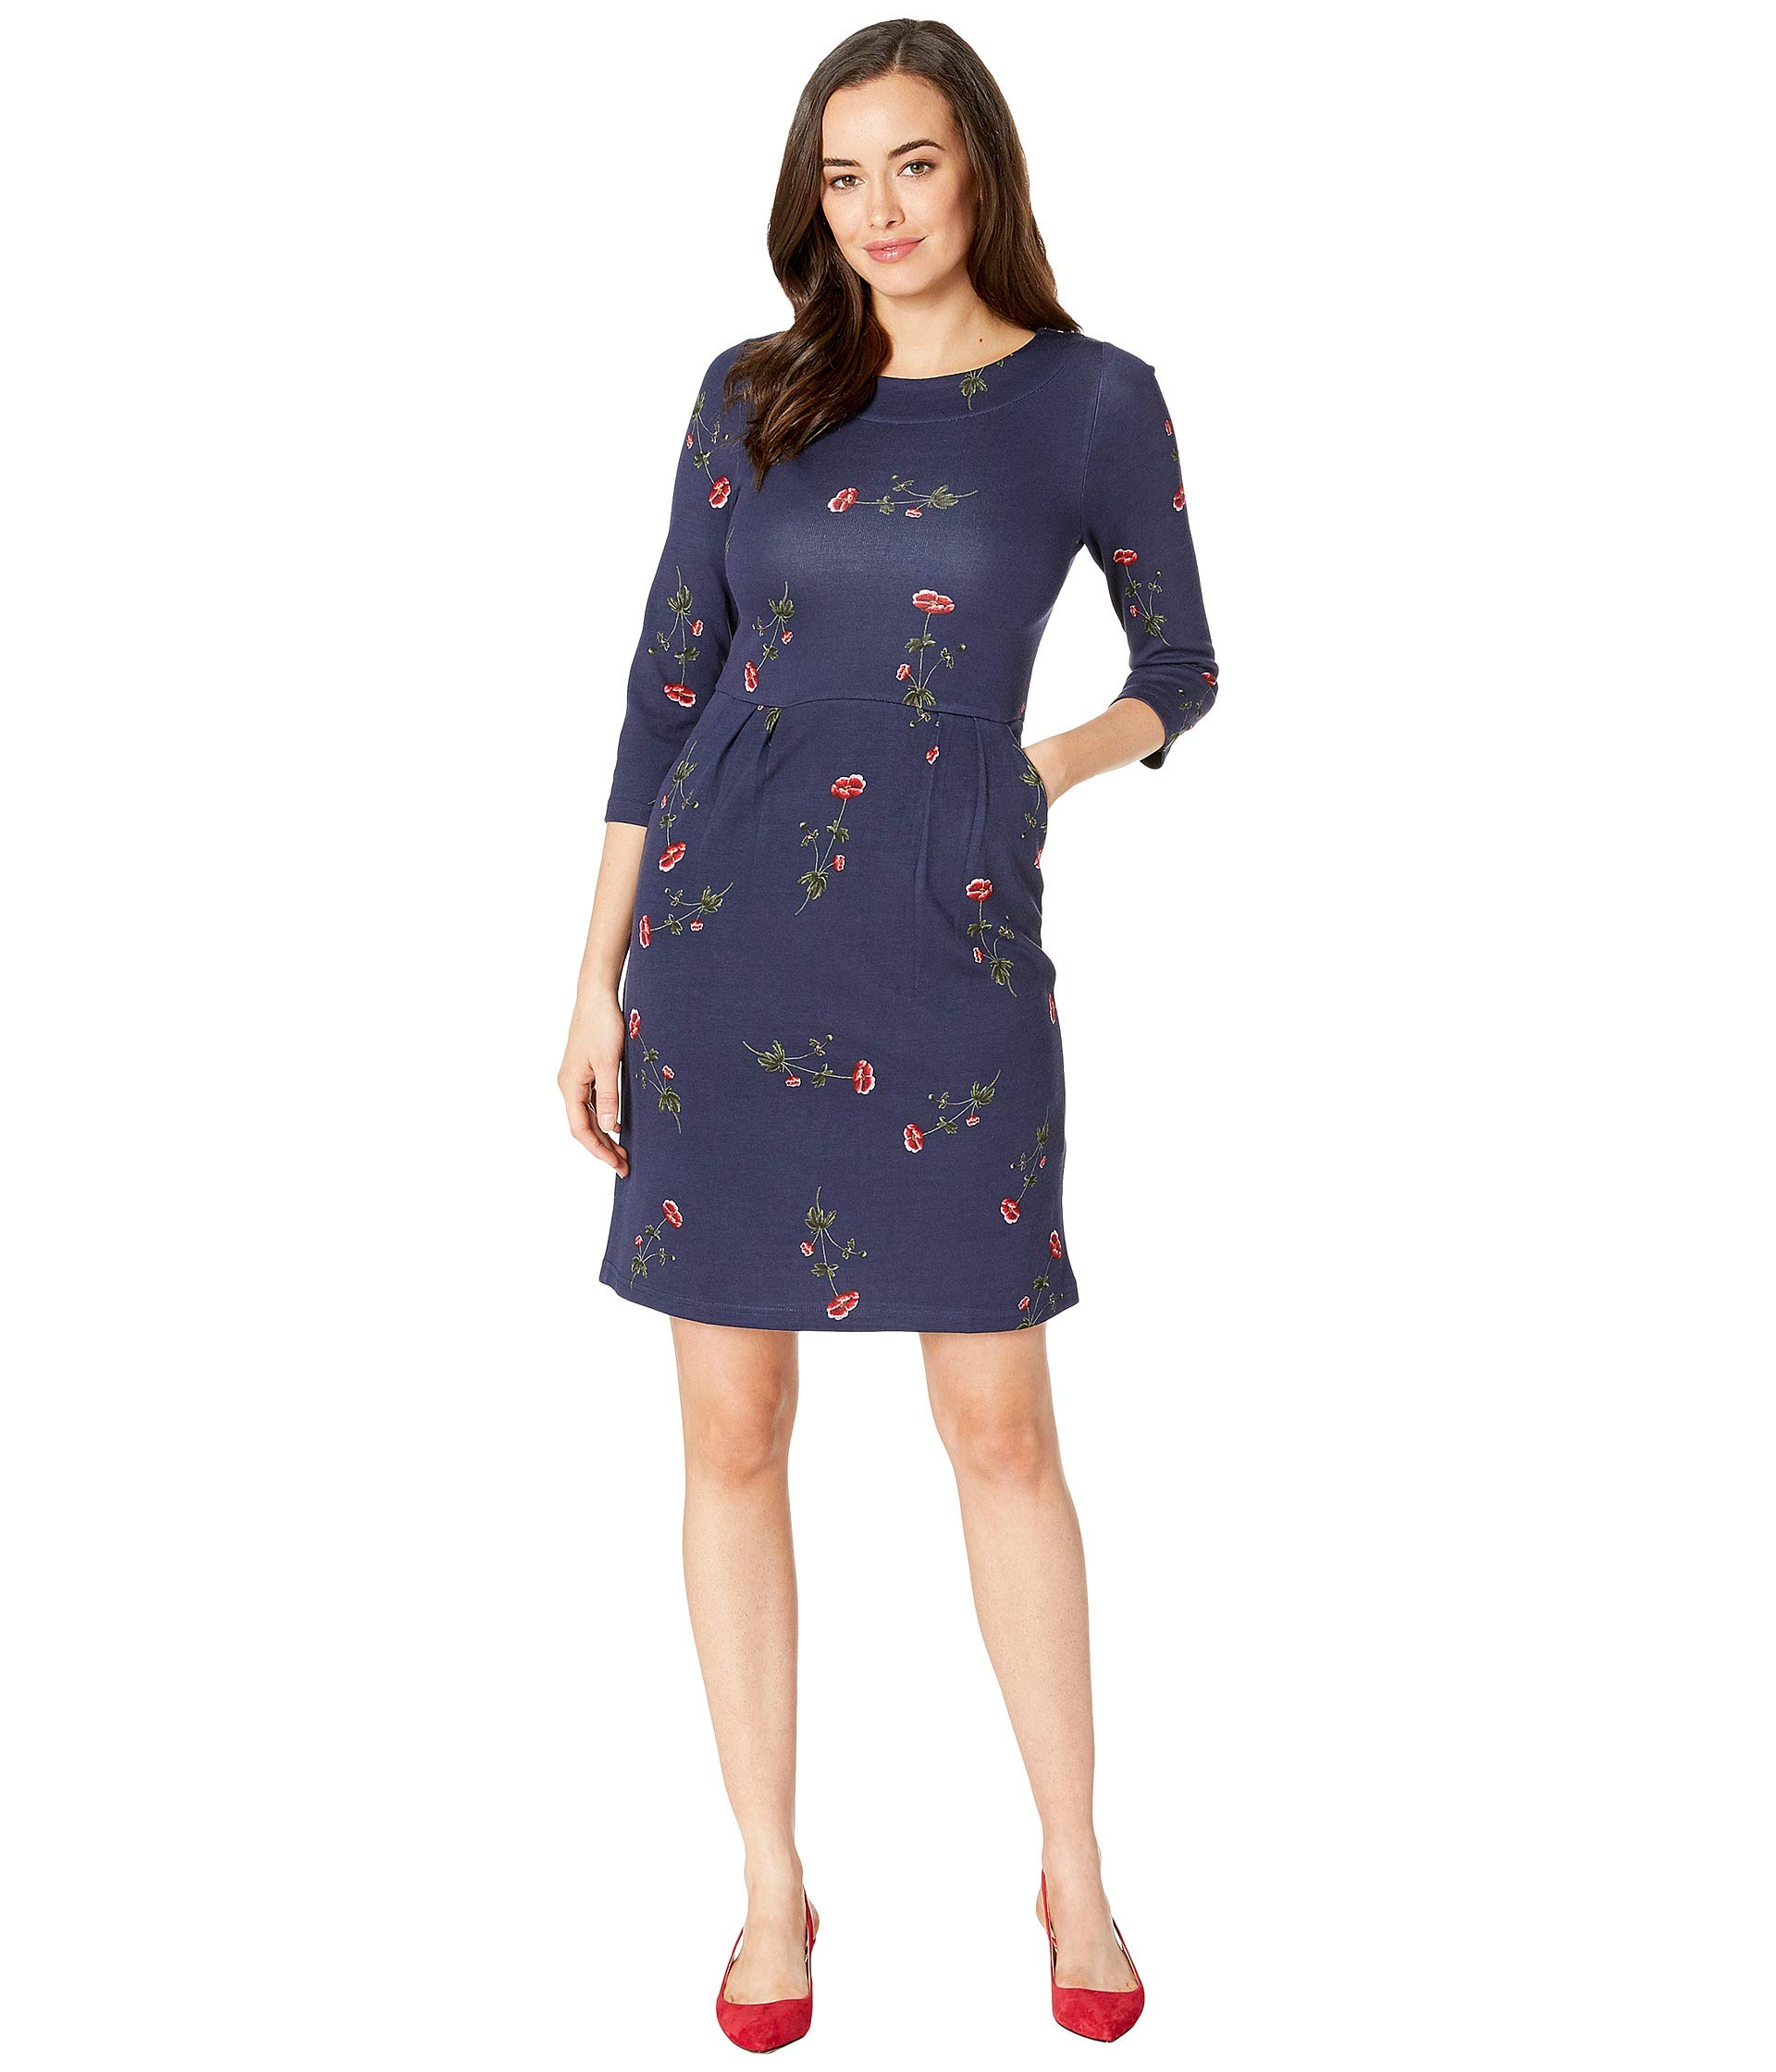 Dress Sleeves With Beth34 Joules Ponte 4 3 Navy Floral YqgEAx1w